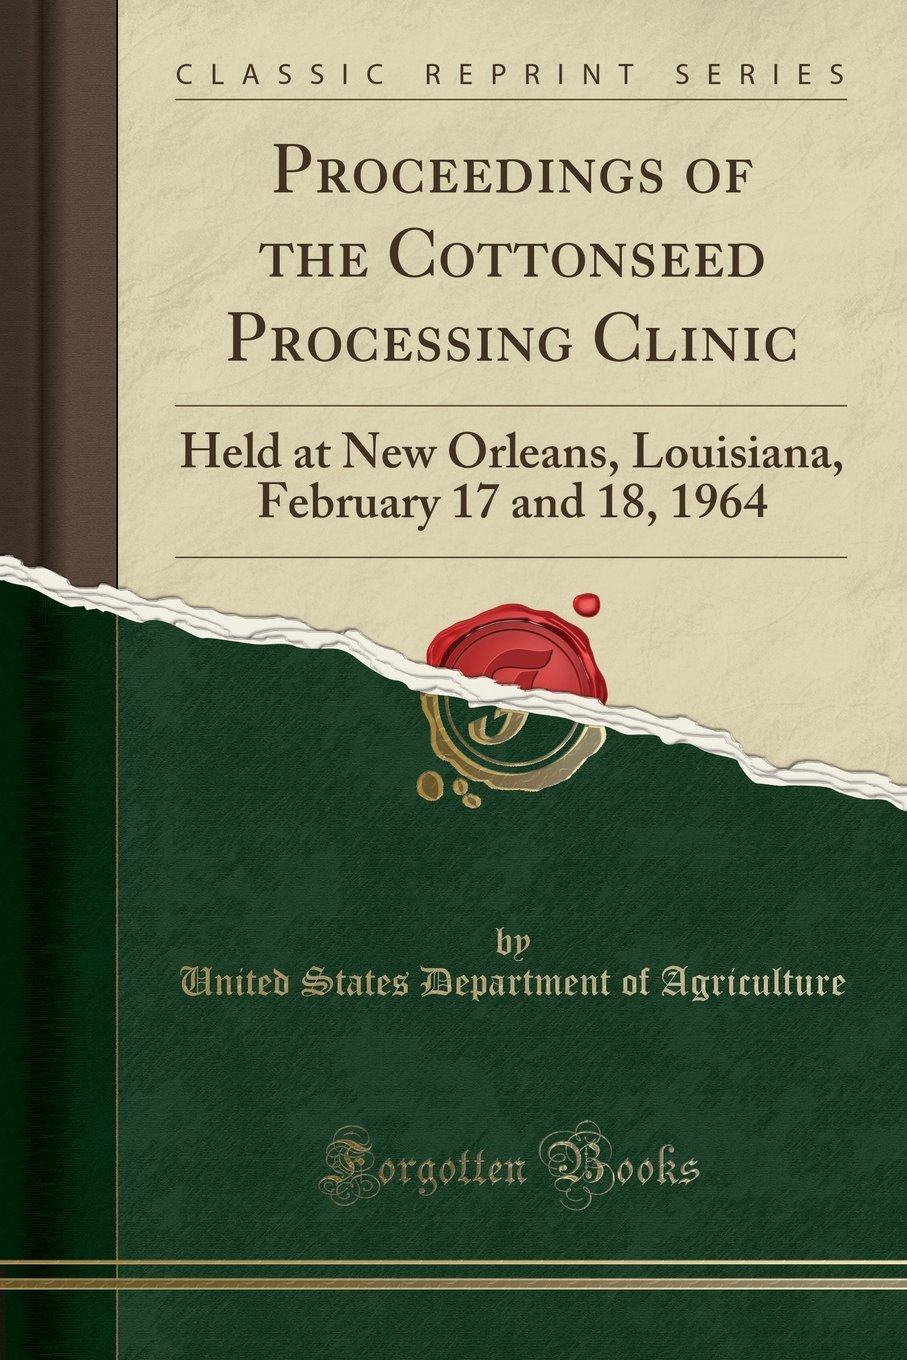 Read Online Proceedings of the Cottonseed Processing Clinic: Held at New Orleans, Louisiana, February 17 and 18, 1964 (Classic Reprint) PDF